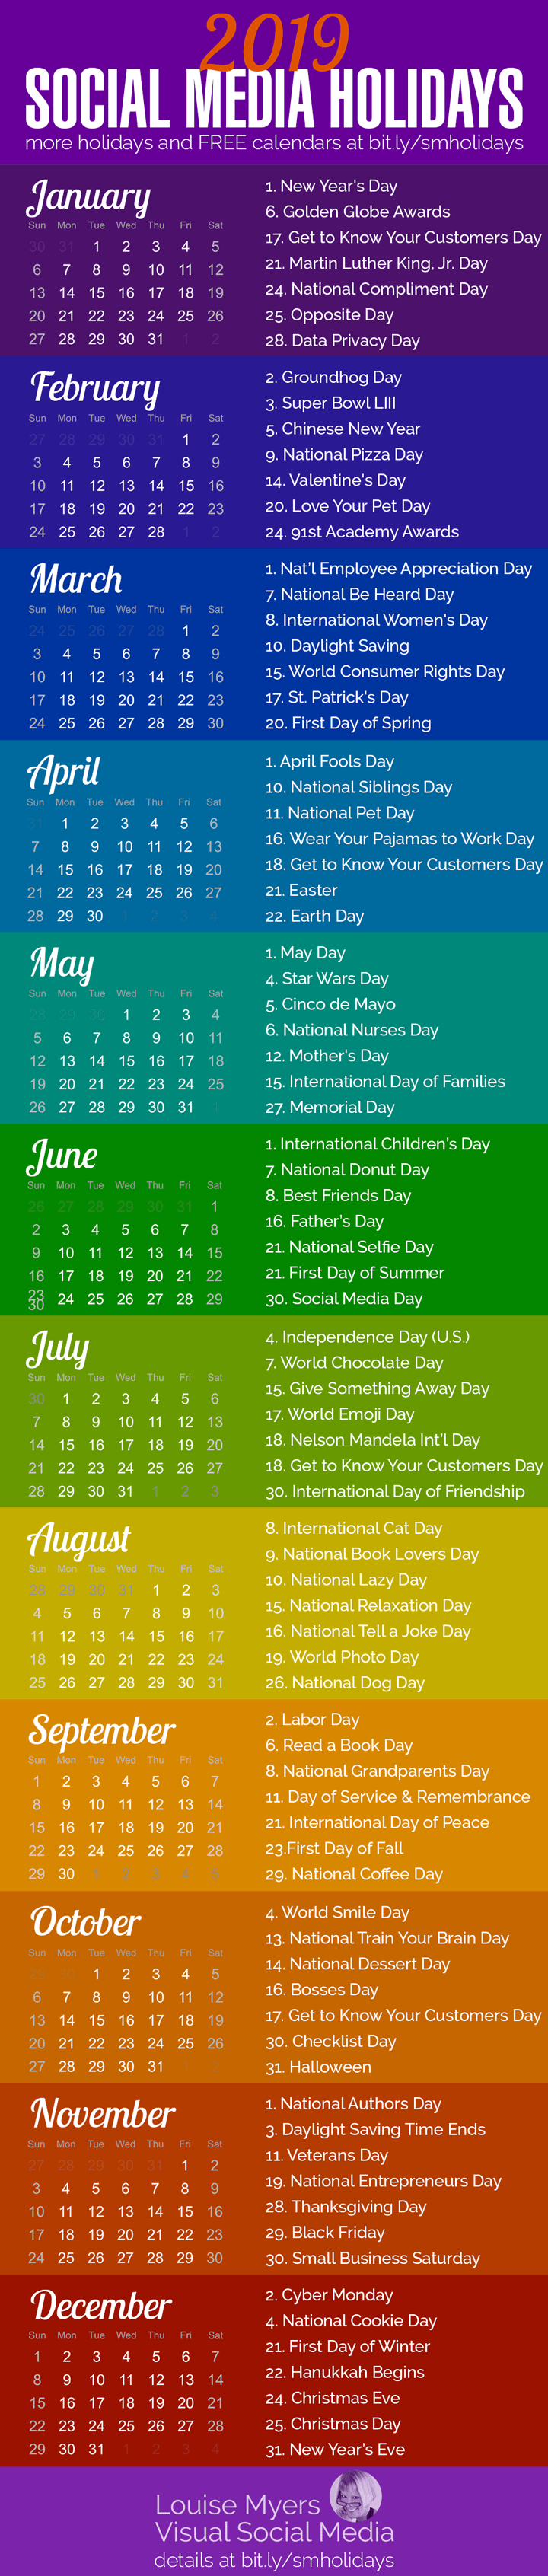 ab46ae11875e 84 Social Media Holidays You Need in 2019: Indispensable!